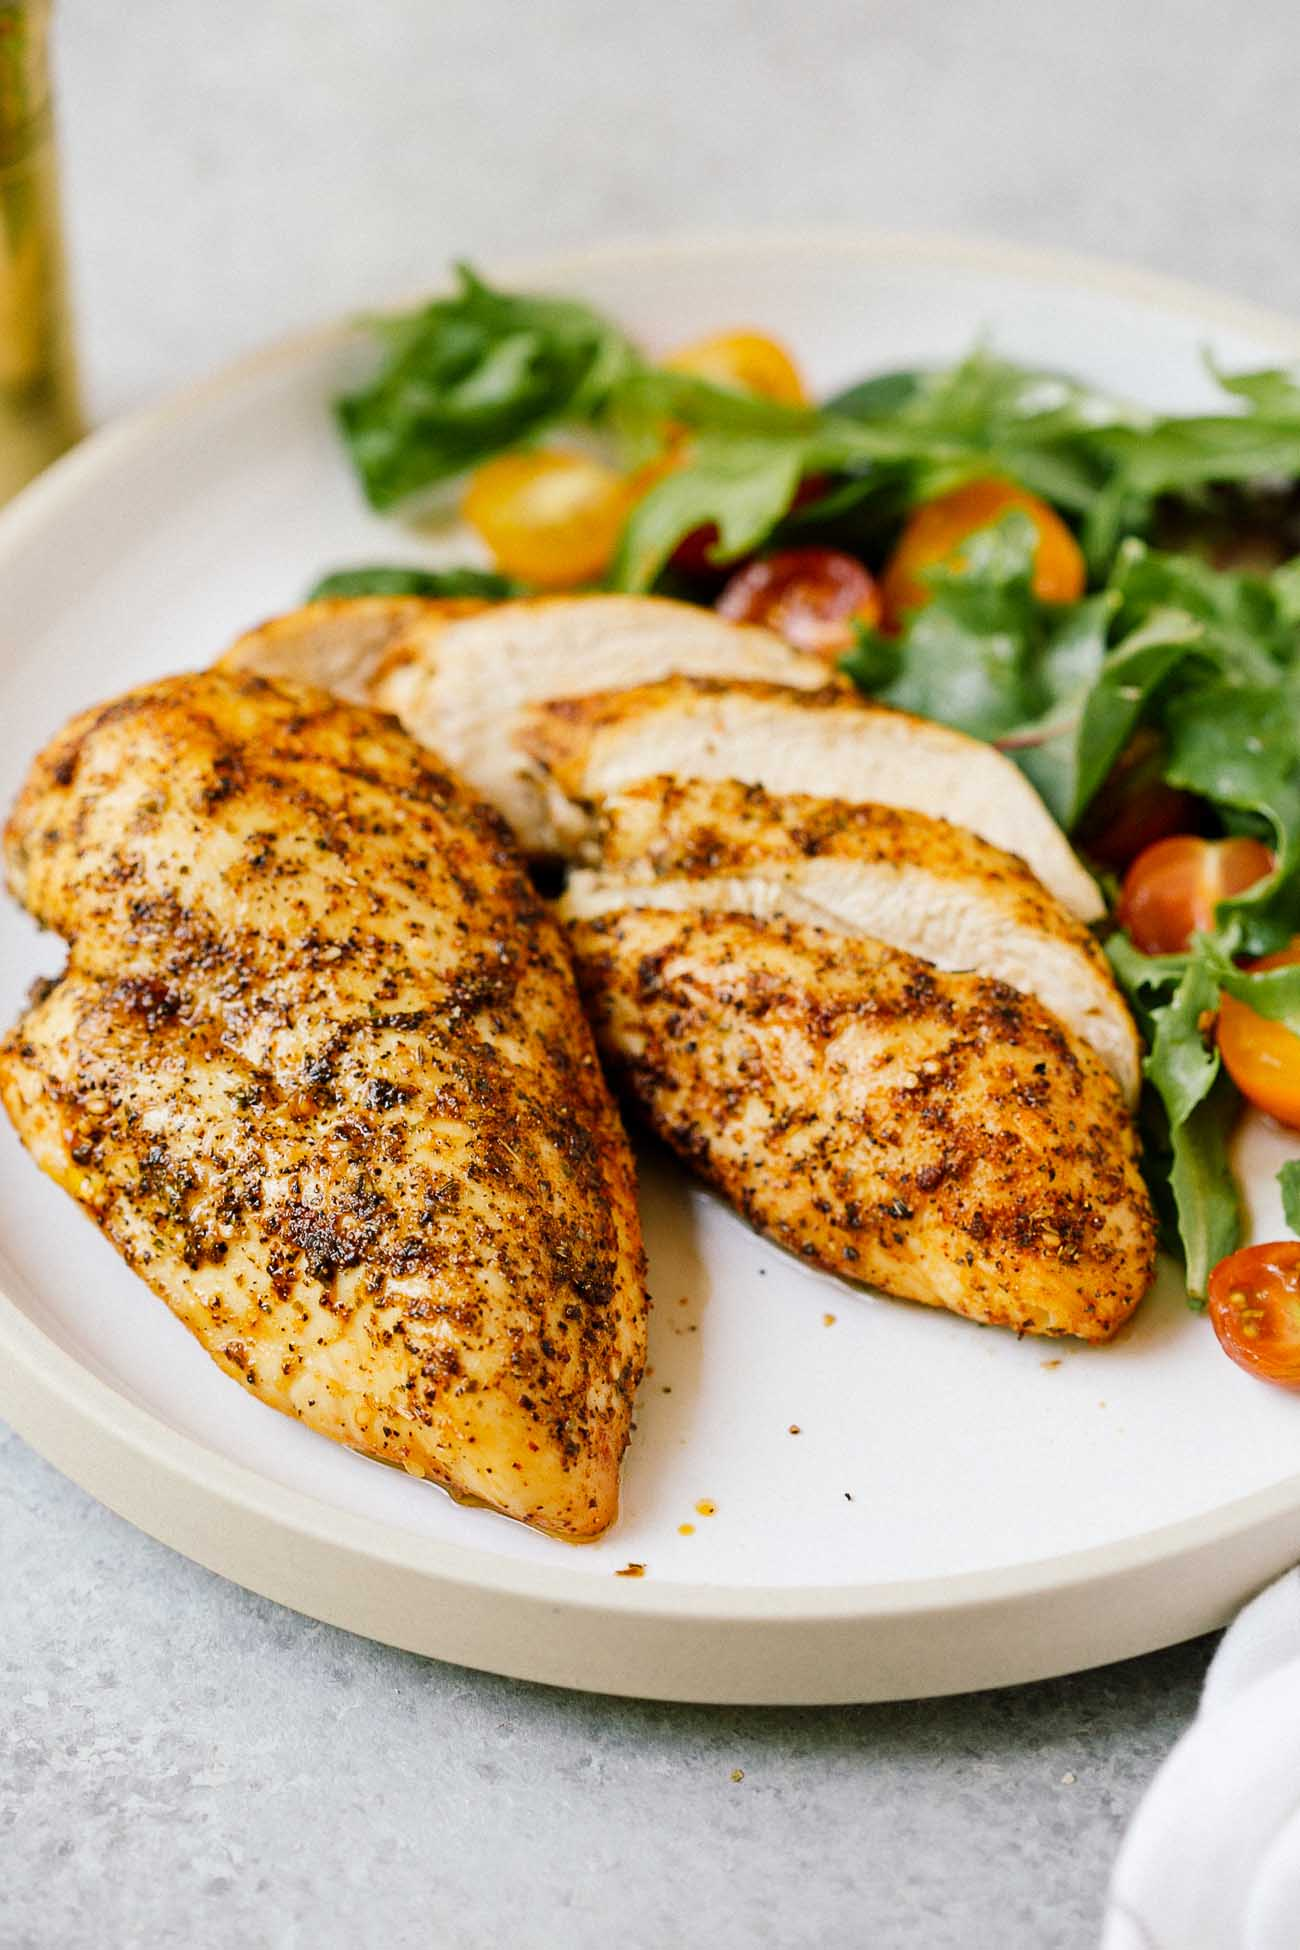 A plate with two air fryer chicken breasts.